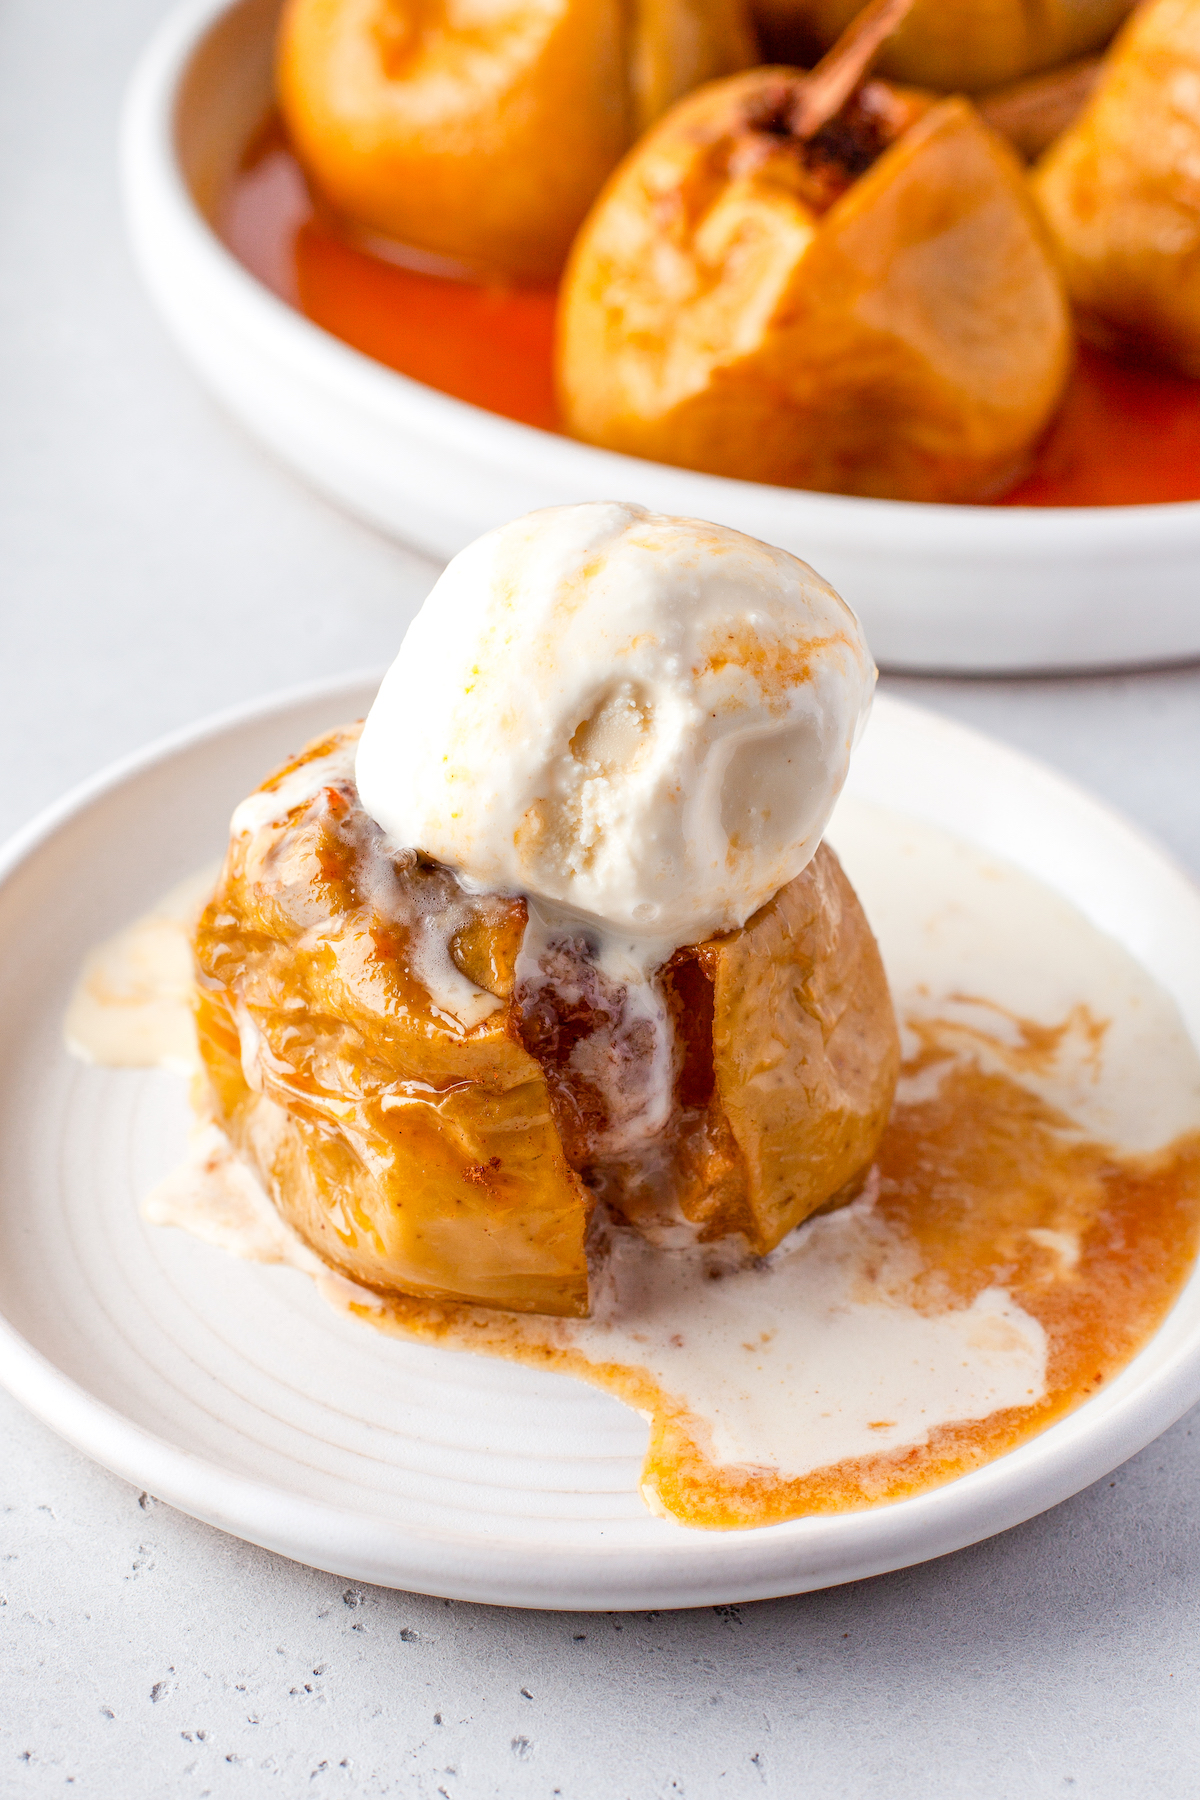 A cinnamon baked apple with a scoop of ice cream on top.